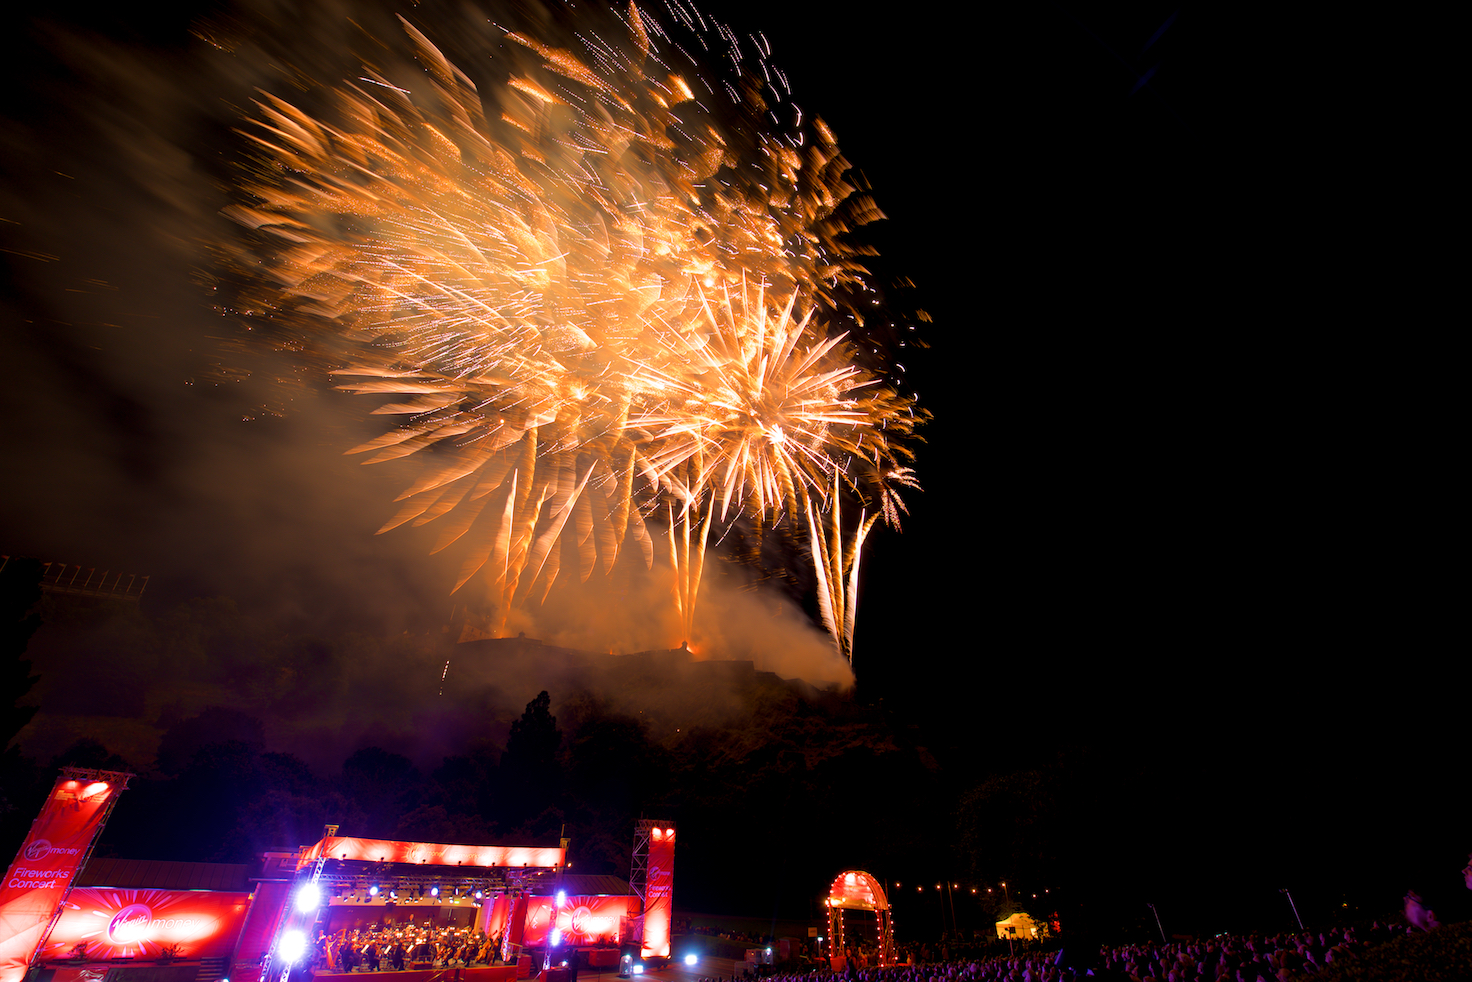 virgin-money-fireworks-concert-edinburgh-castleedinburgh-international-festival-edinburgh-castle-29th-august-2016-15